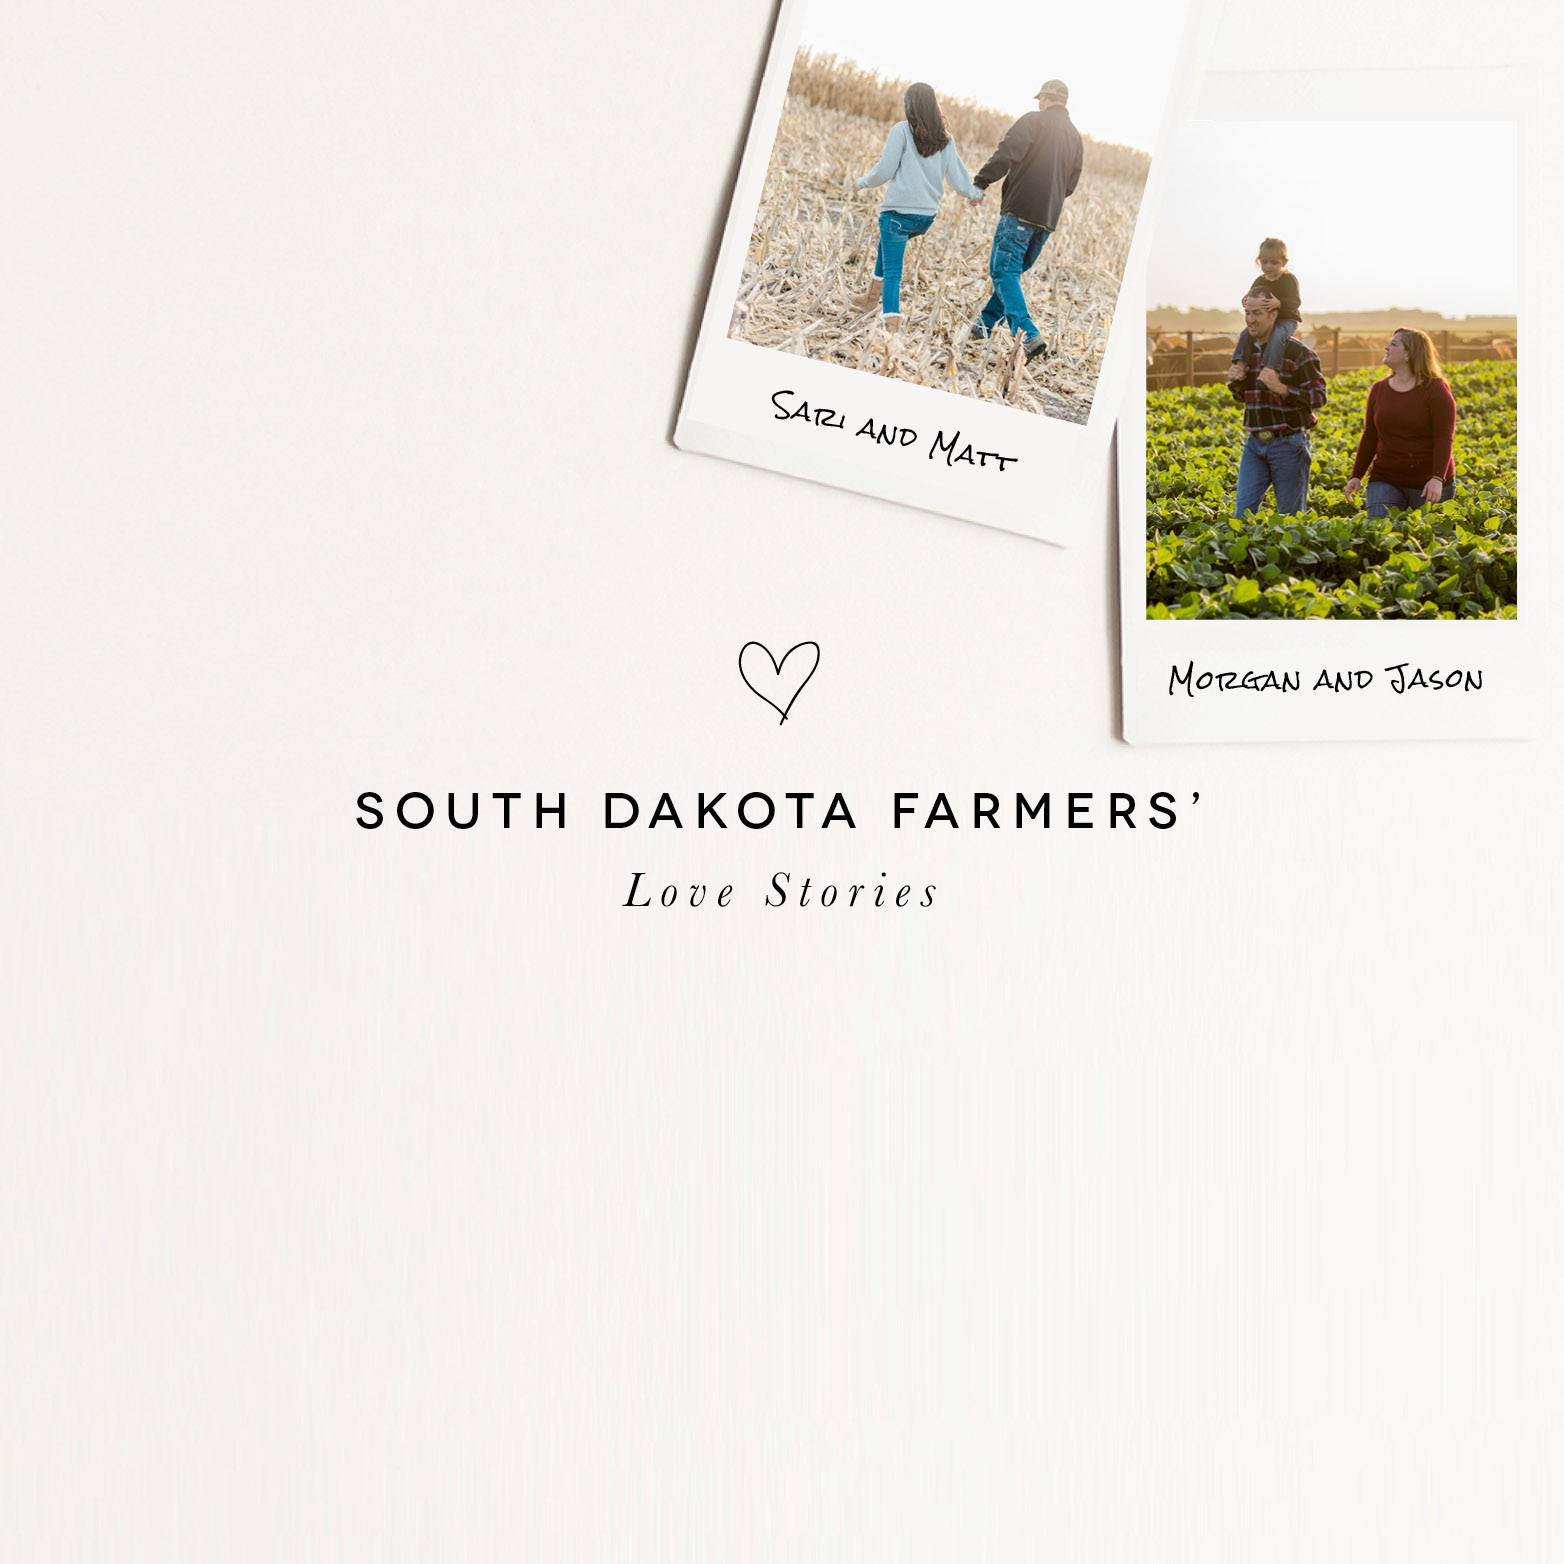 South Dakota farmers' love stories